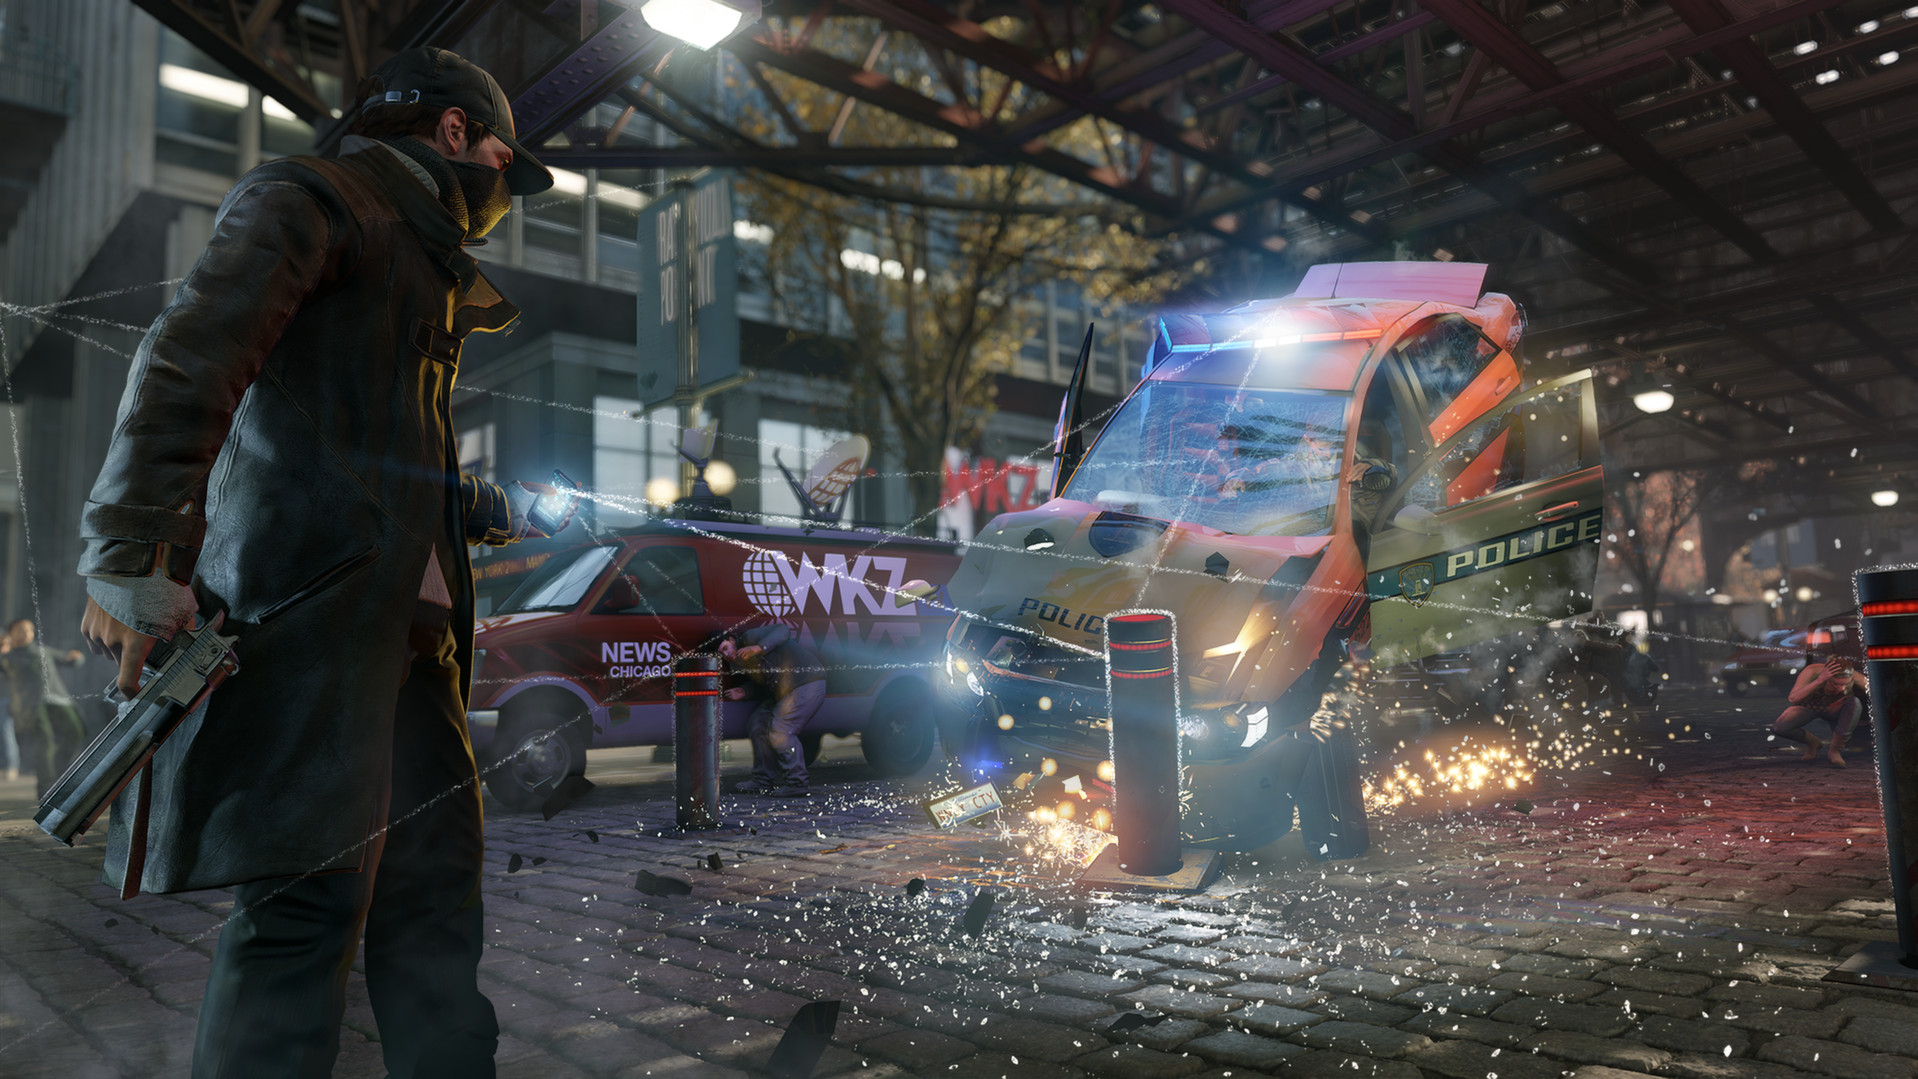 Watch Dogs image 1